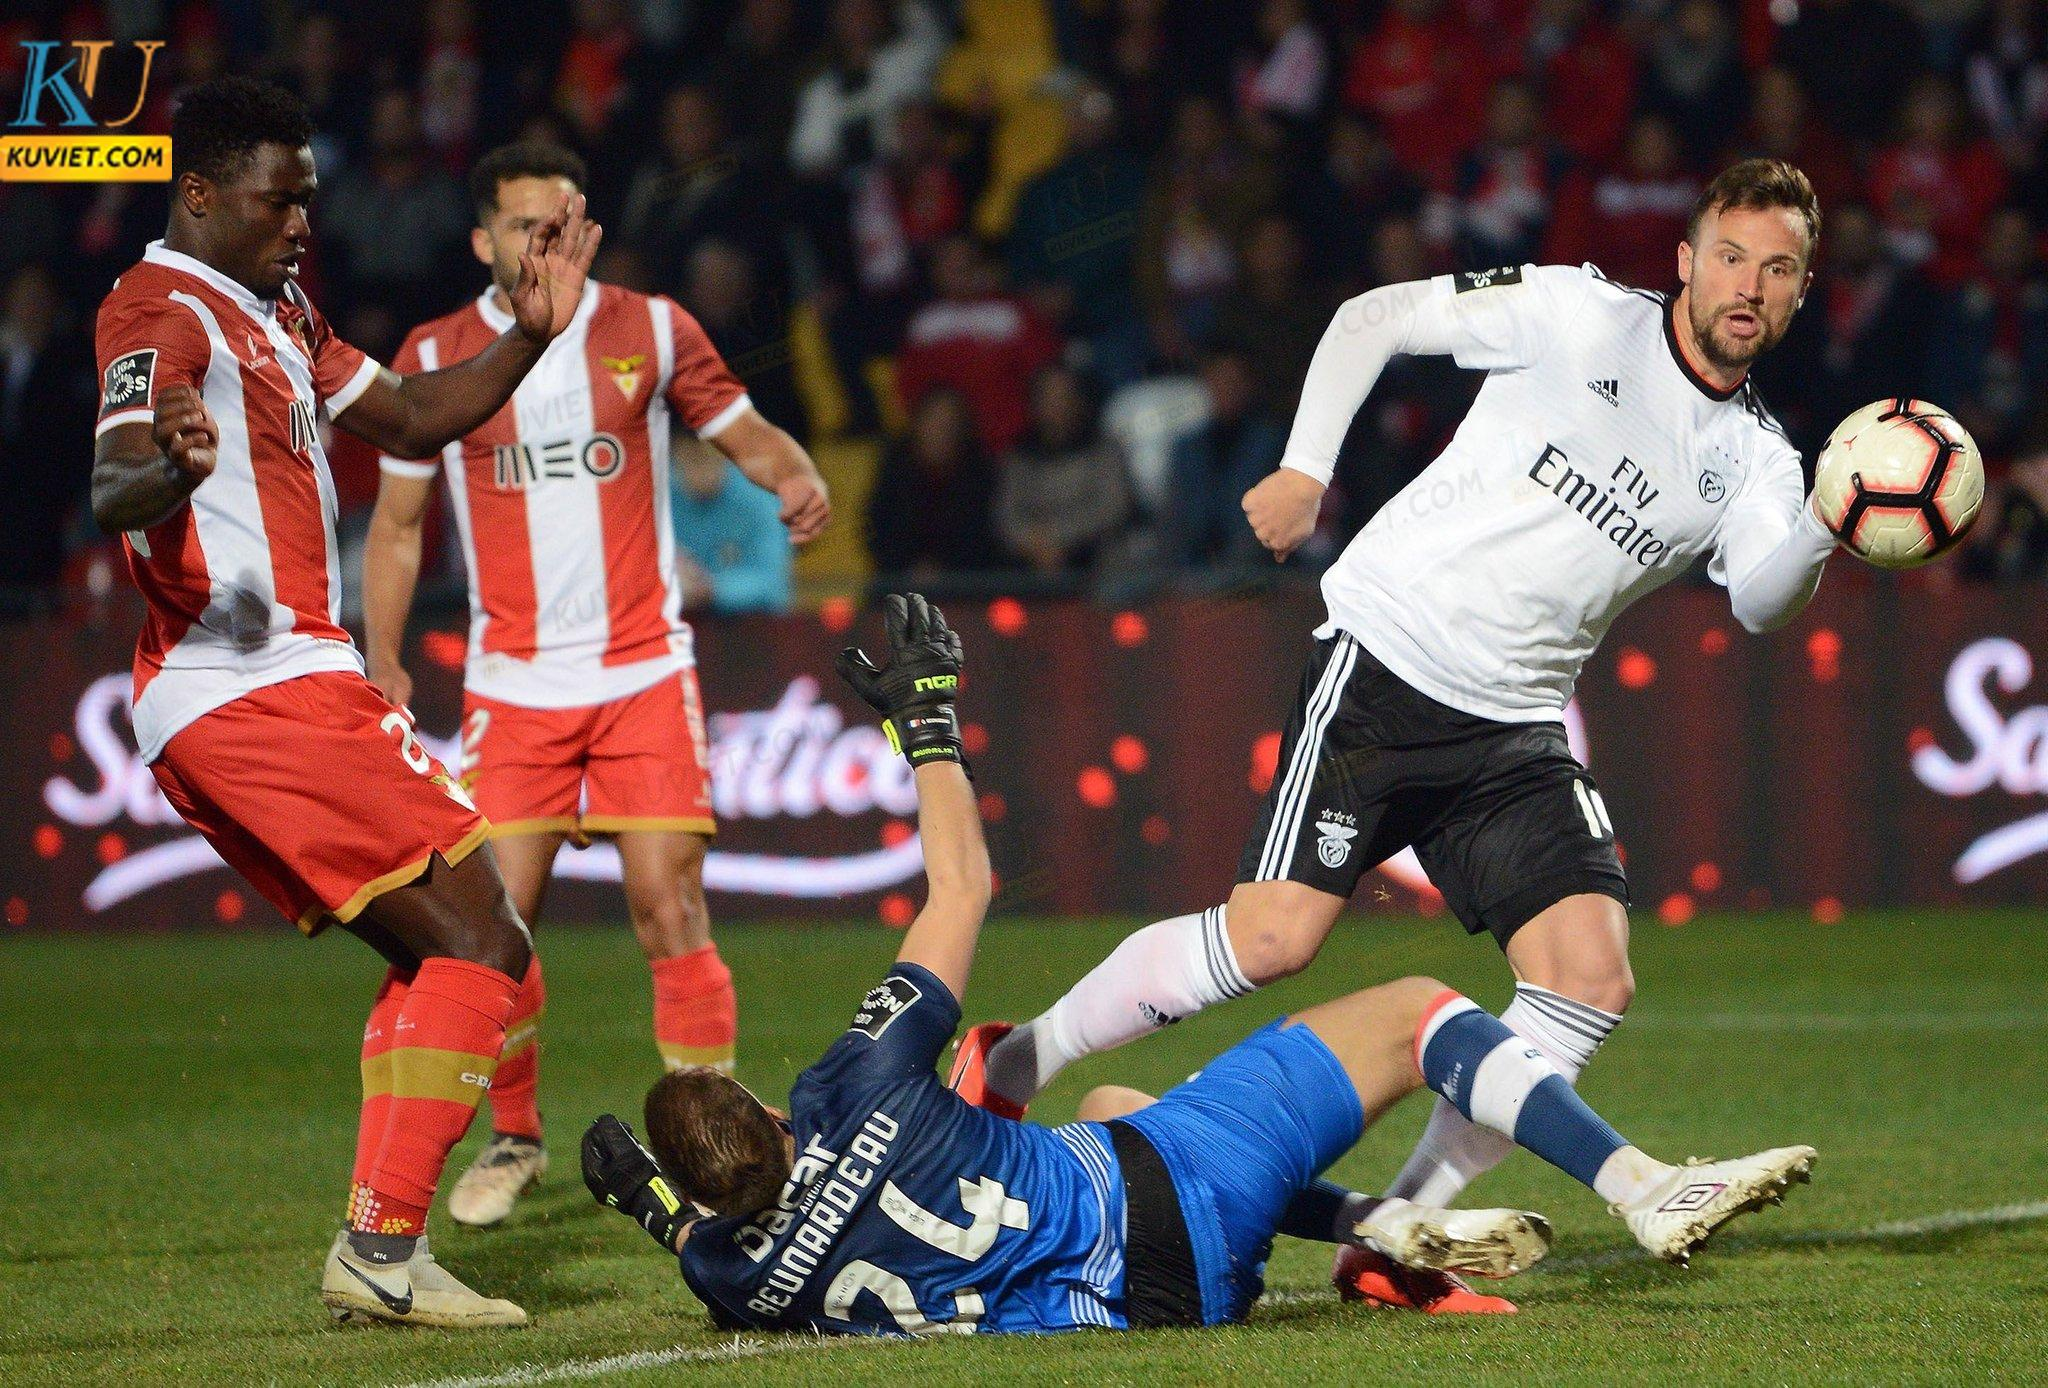 Soi-keo-Aves-vs-Benfica-3h15-ngay-22-07-2020